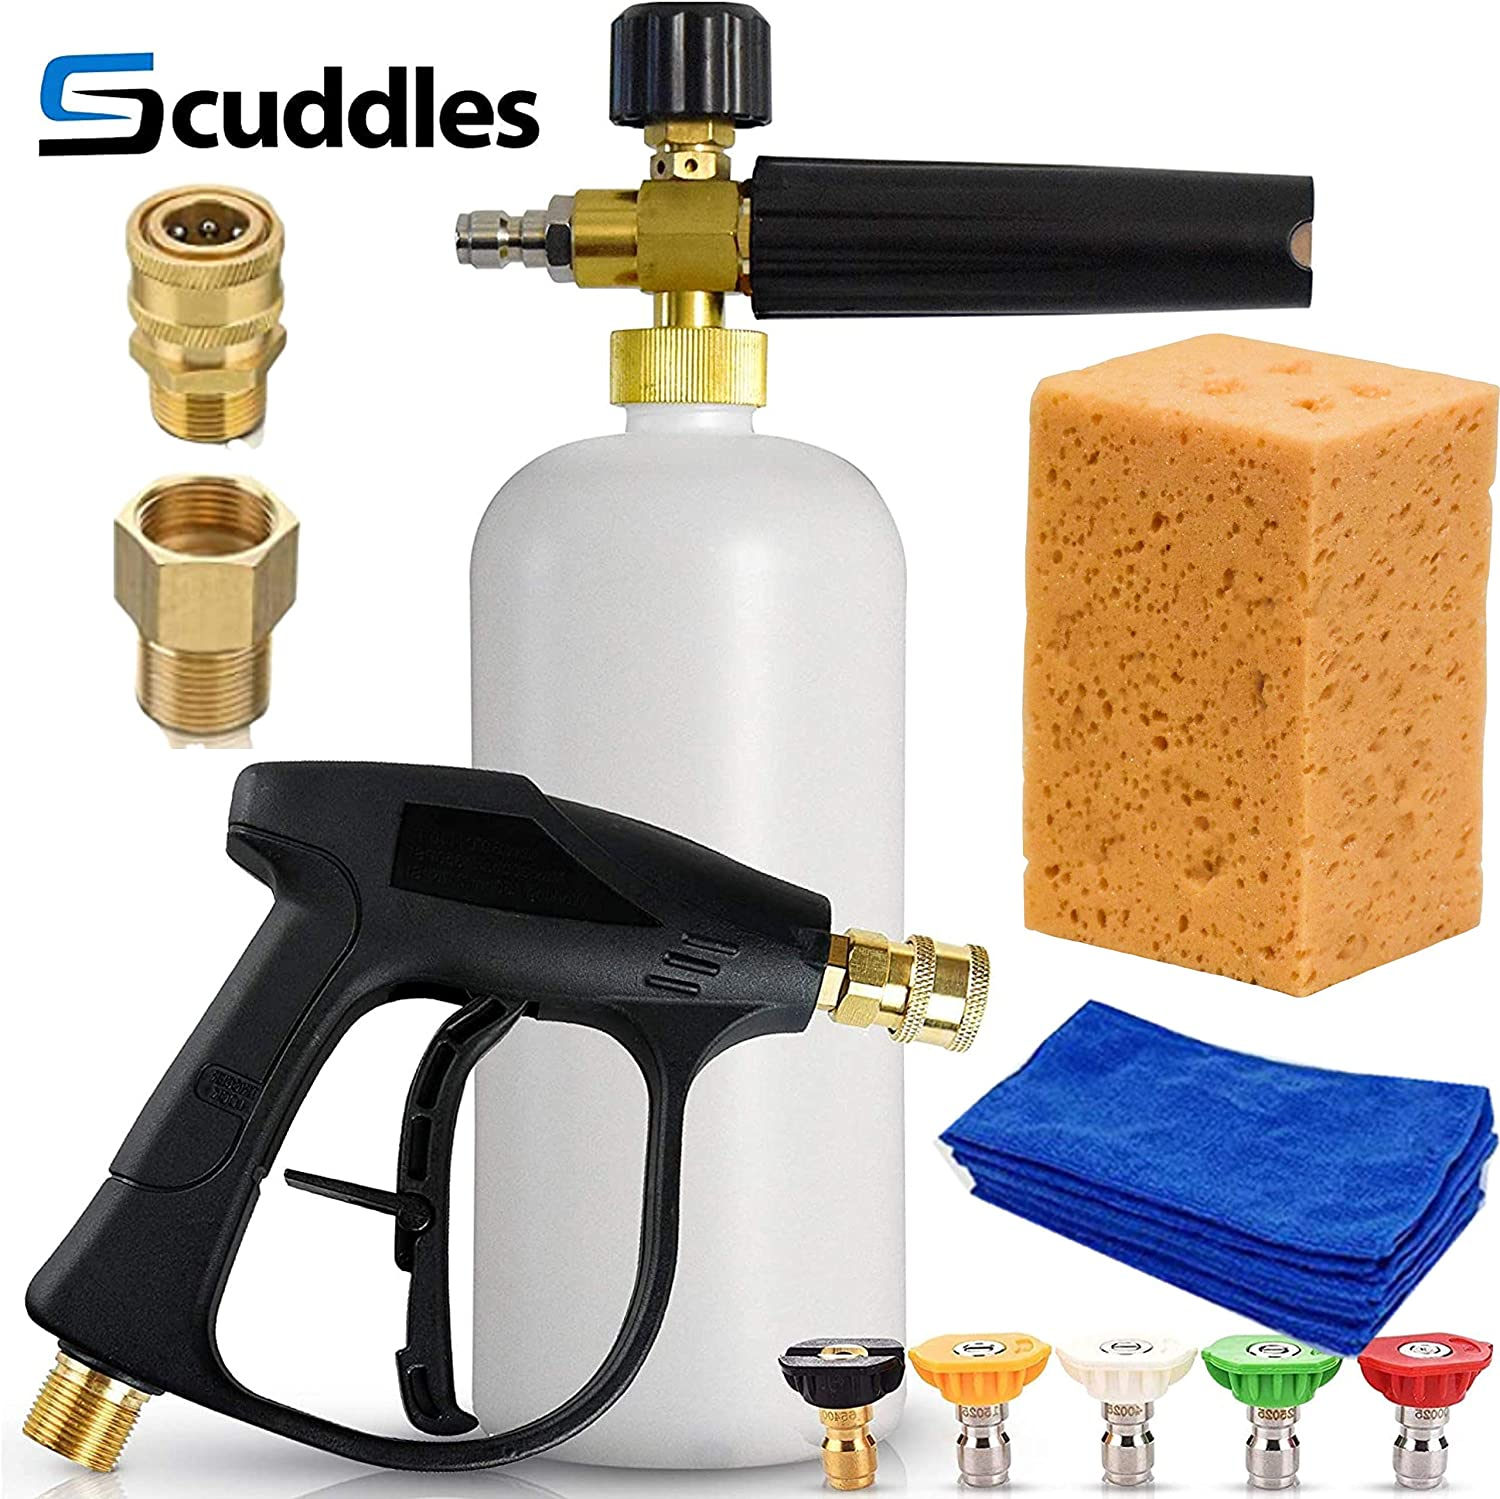 Best Car Wax 2021 Amazon.com: Scuddles | Foam Cannon | Foam Lance | Pressure Washer